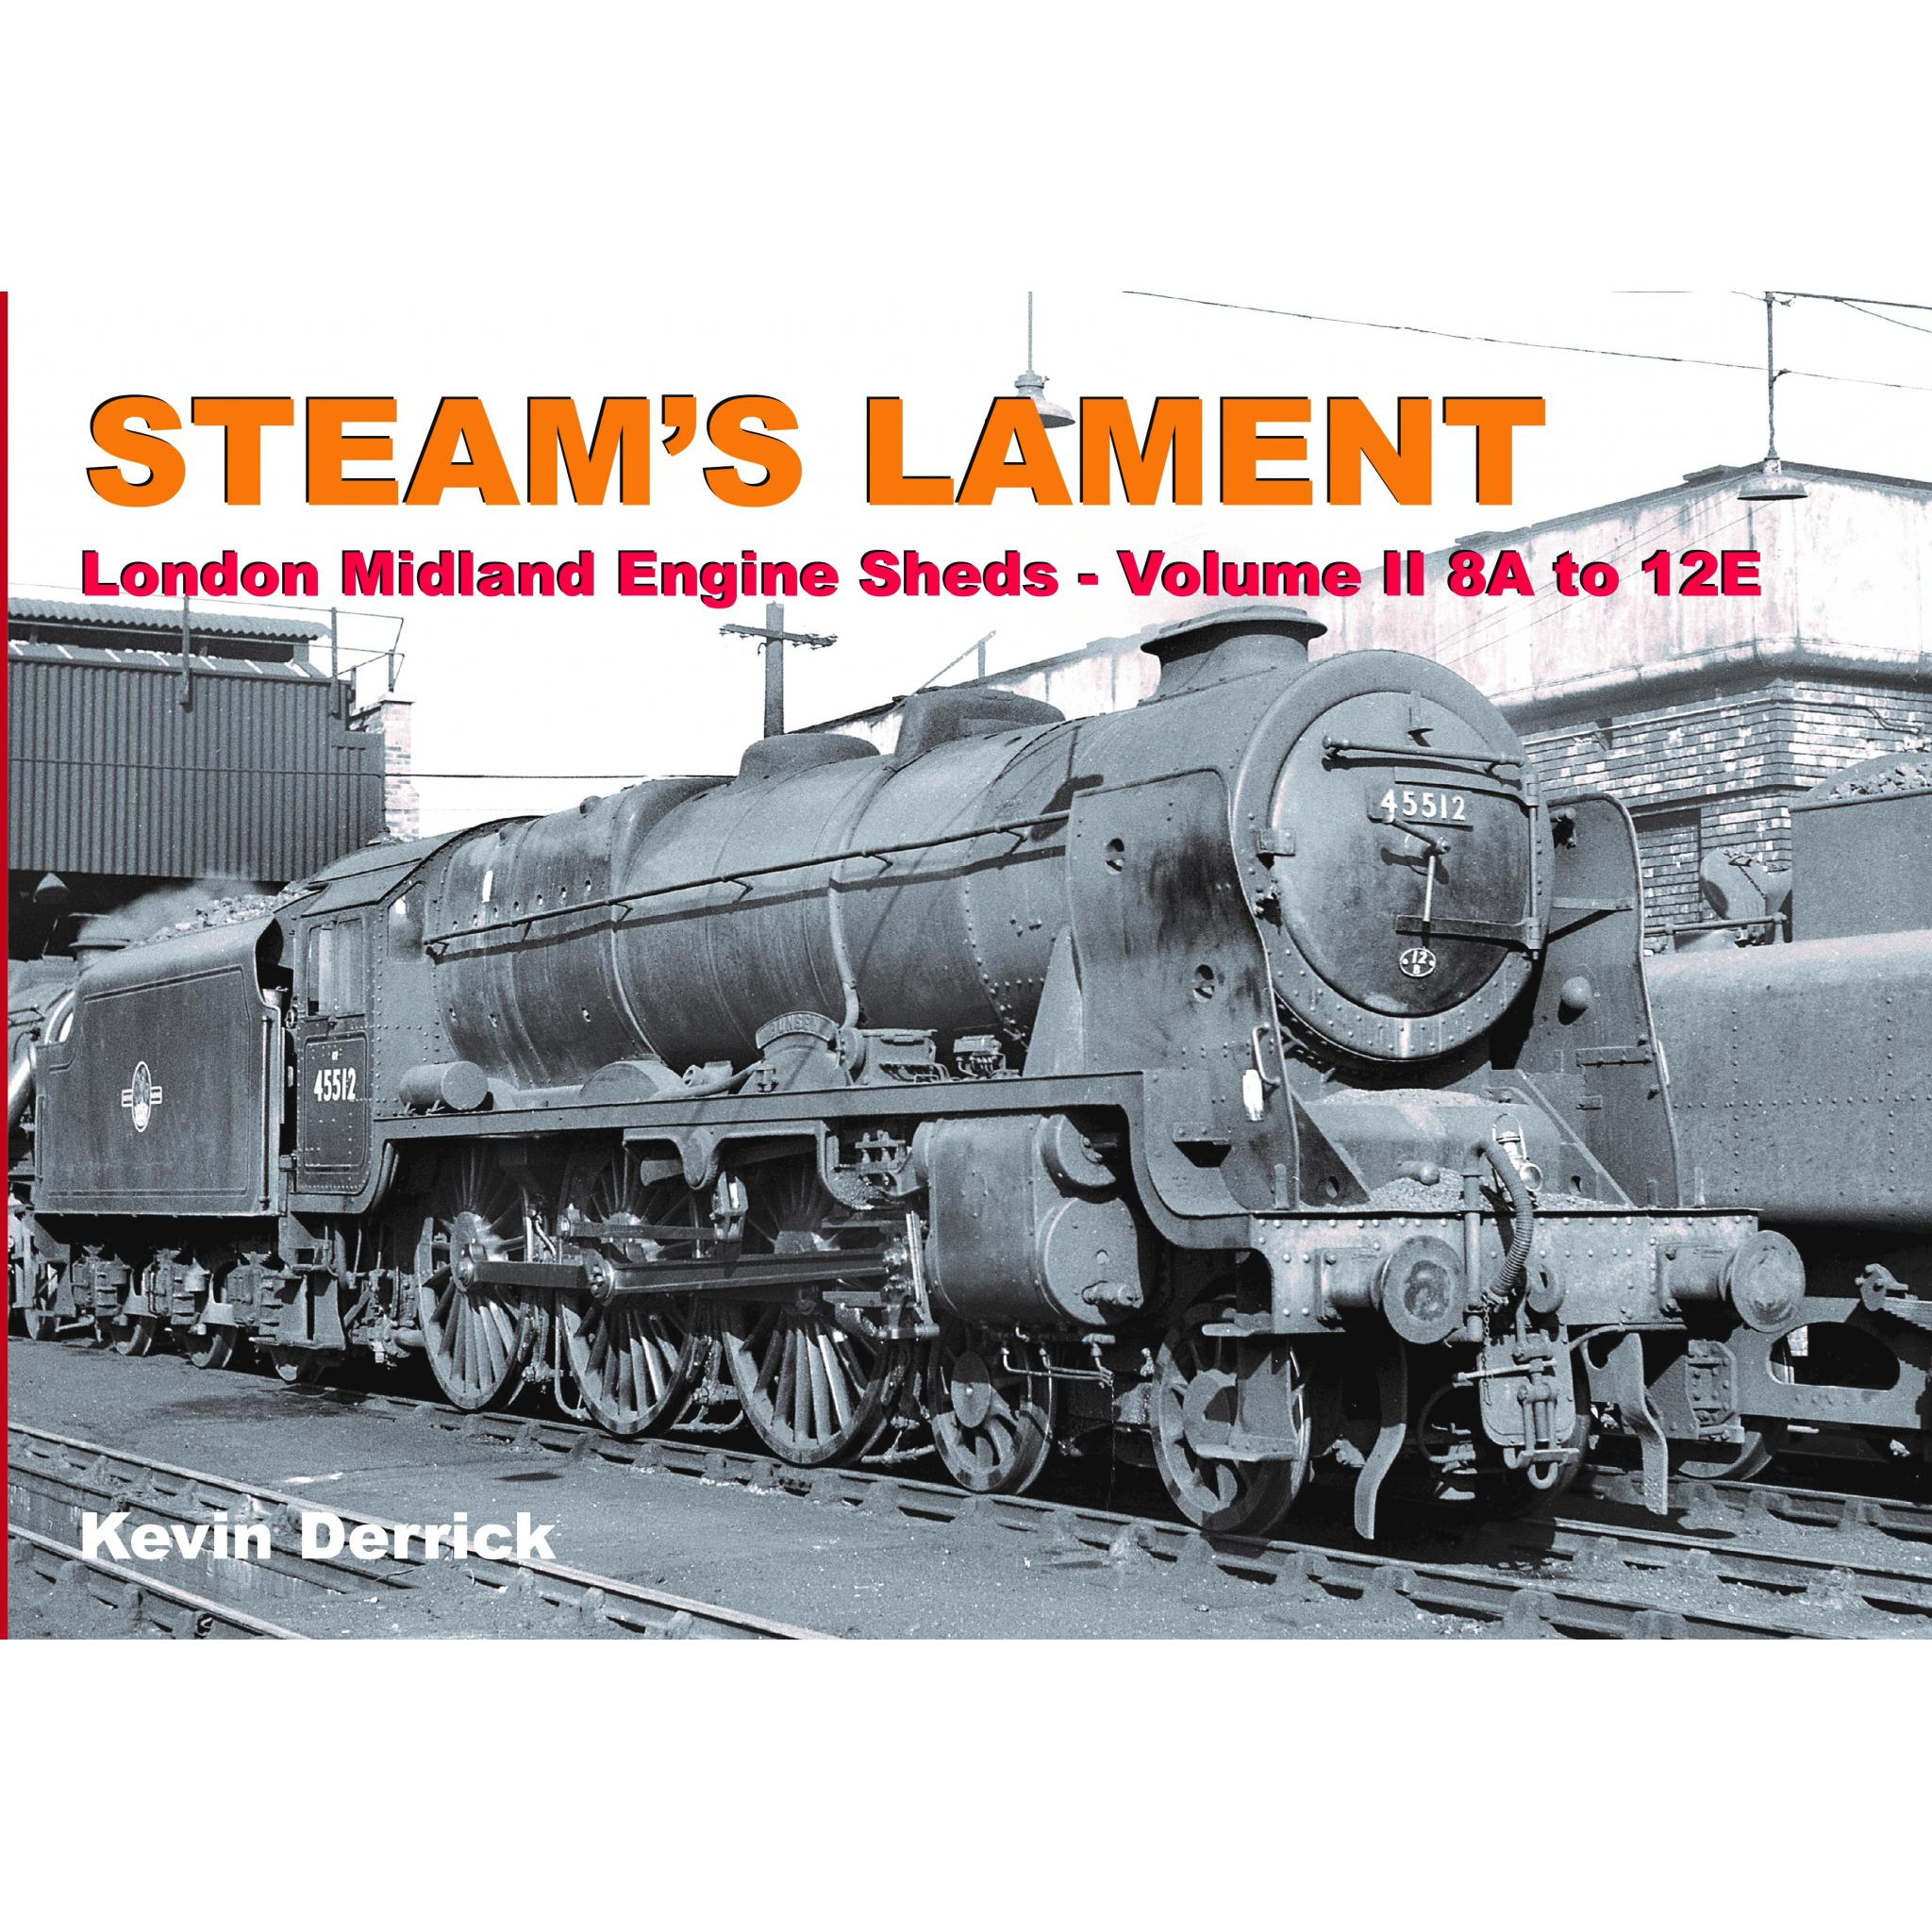 STEAM'S LAMENT London Midland Region Engine Sheds II 8A to 12E (STOCKS ARE GETTING LOW BE QUICK)